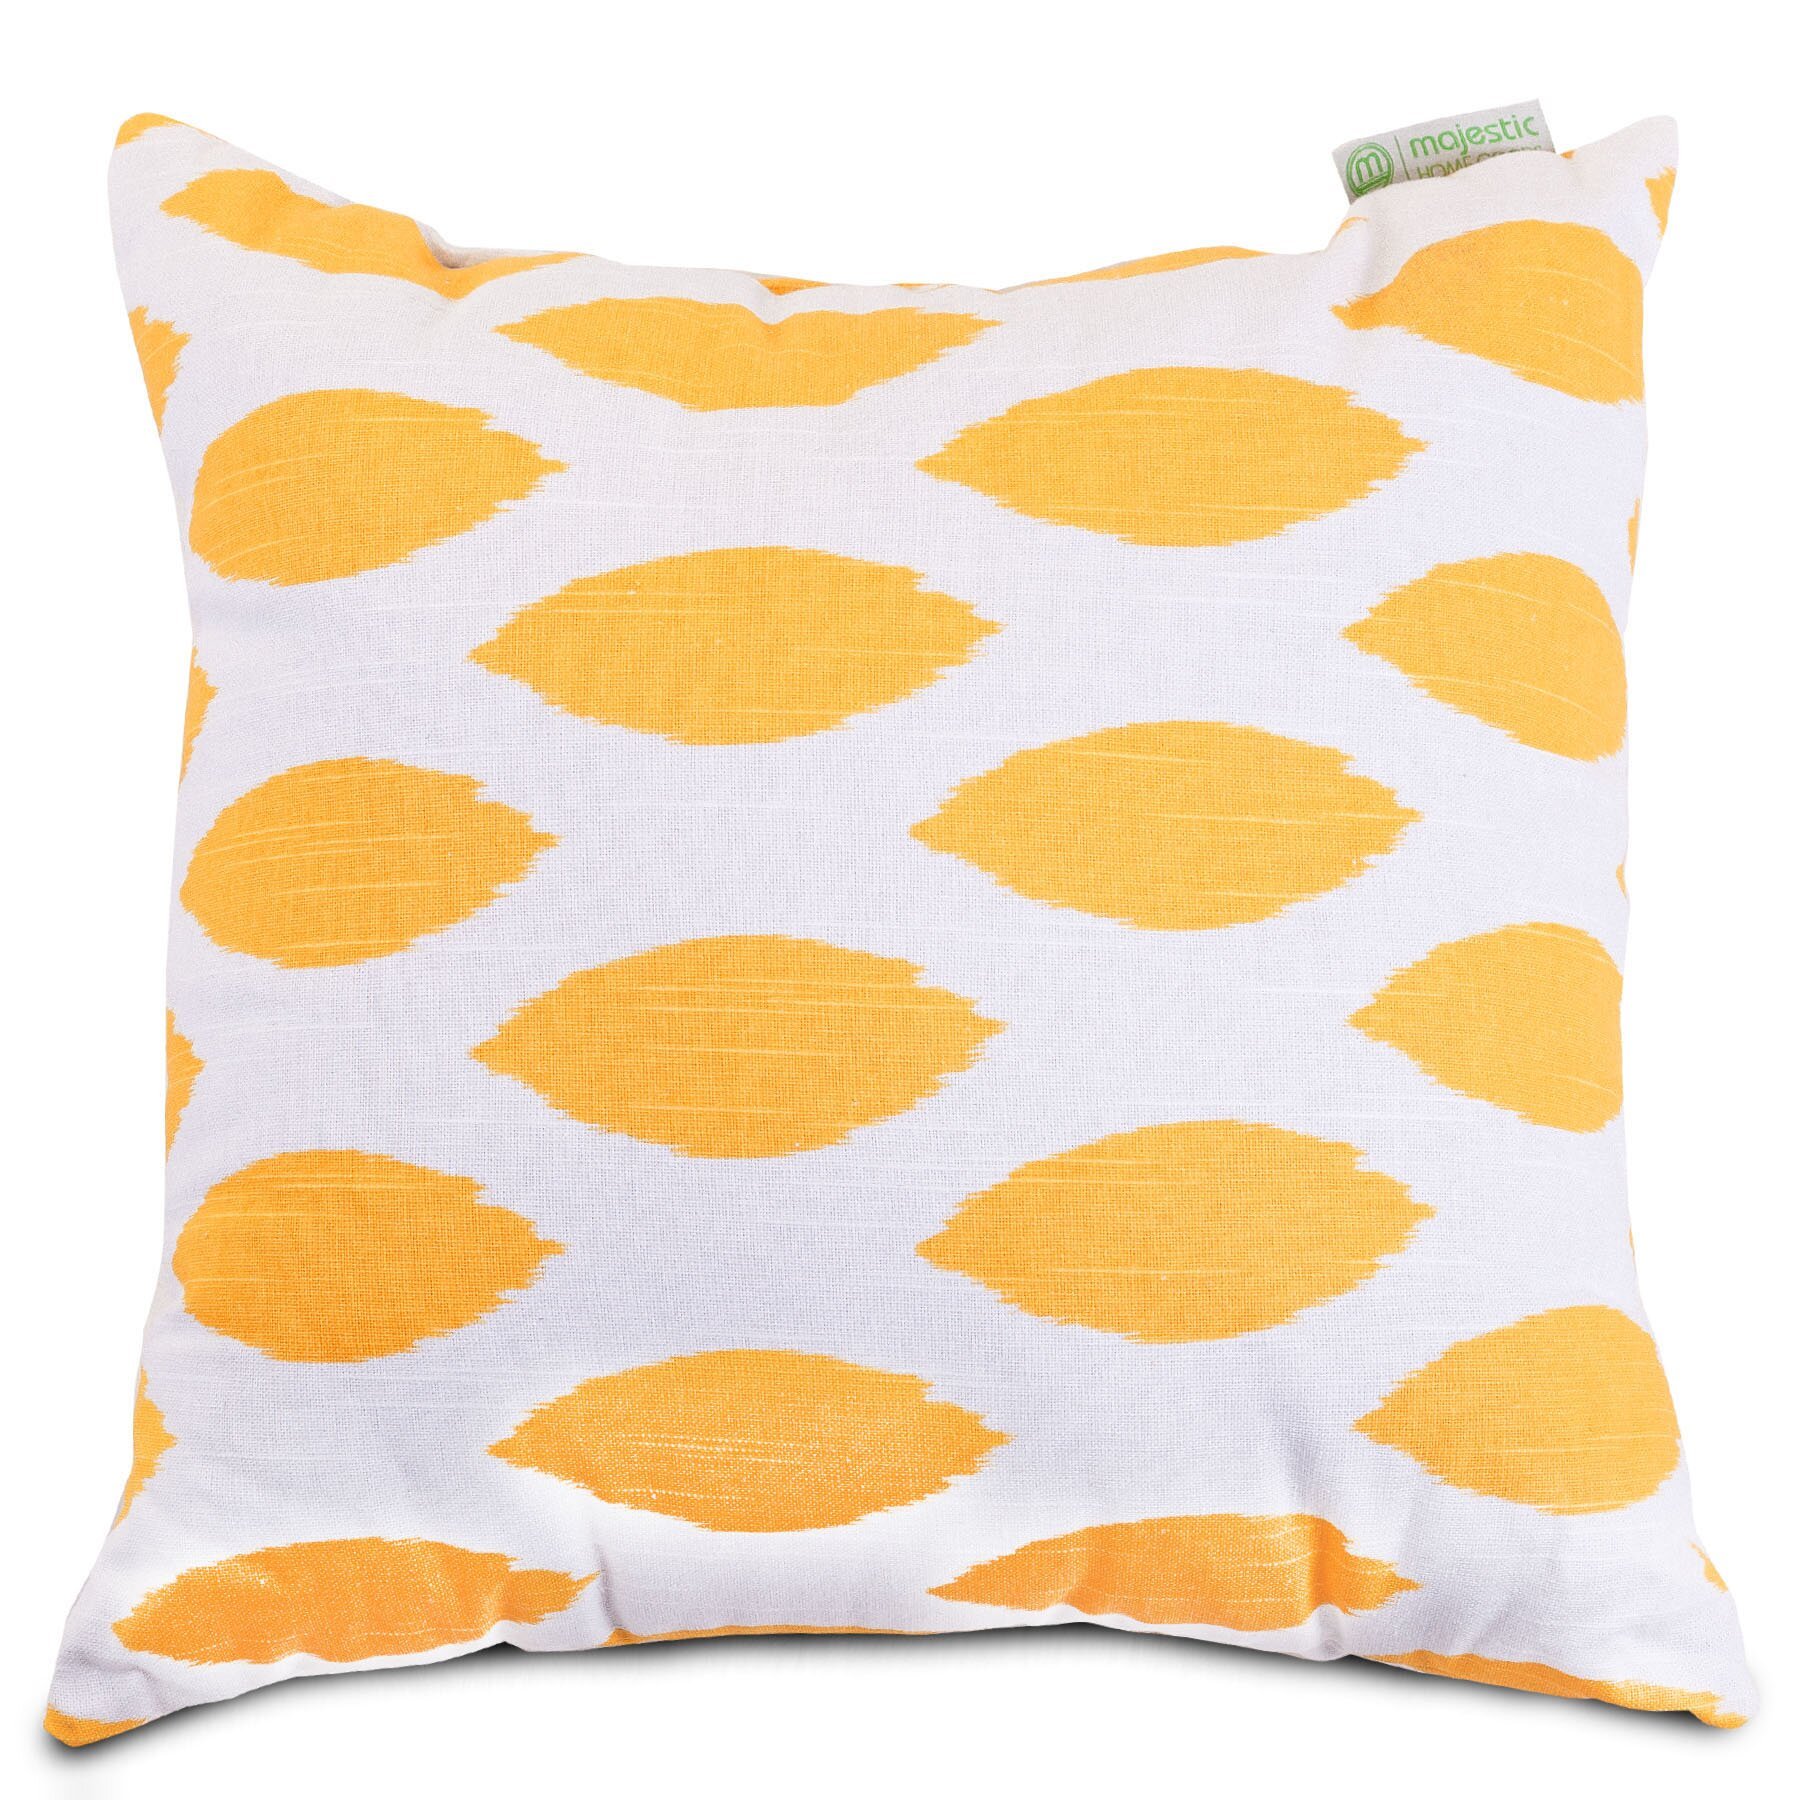 Throw Pillows Home Goods : Majestic Home Goods Alli Throw Pillow & Reviews Wayfair